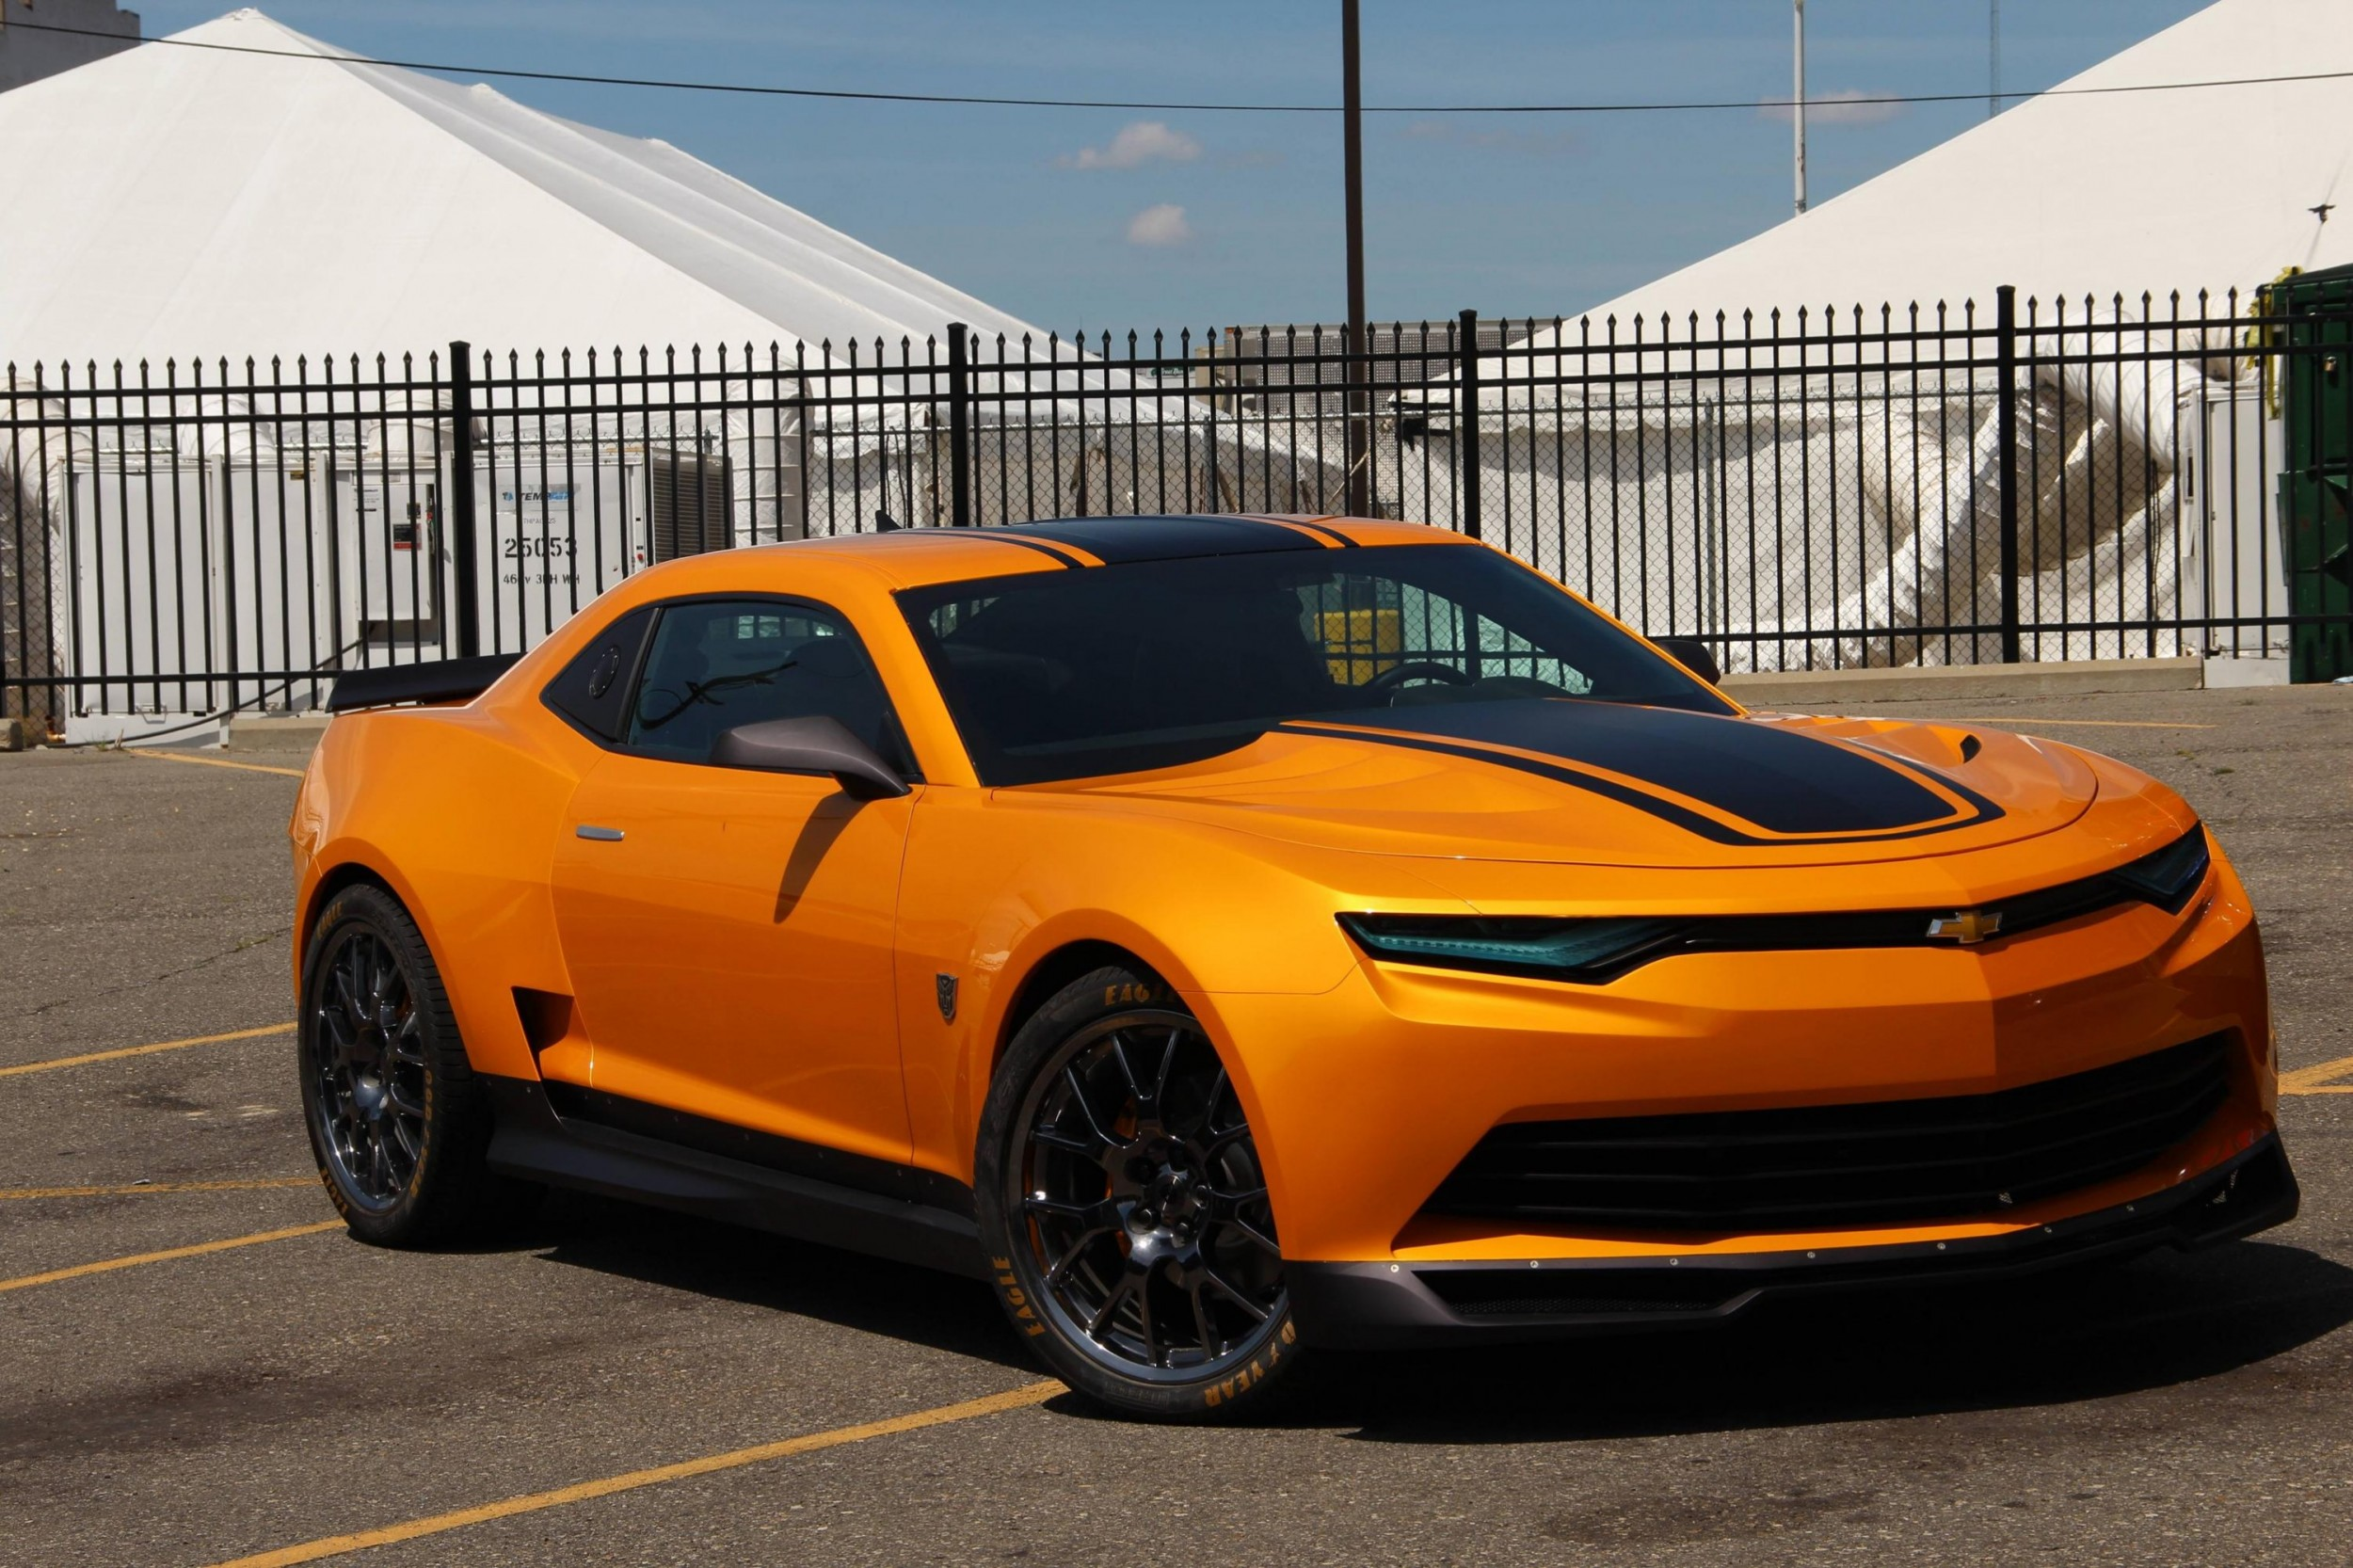 Prediction: Bumblebee Chevrolet Camaro Gone After Transformers4 + Info About 1967 Z/28 and ...